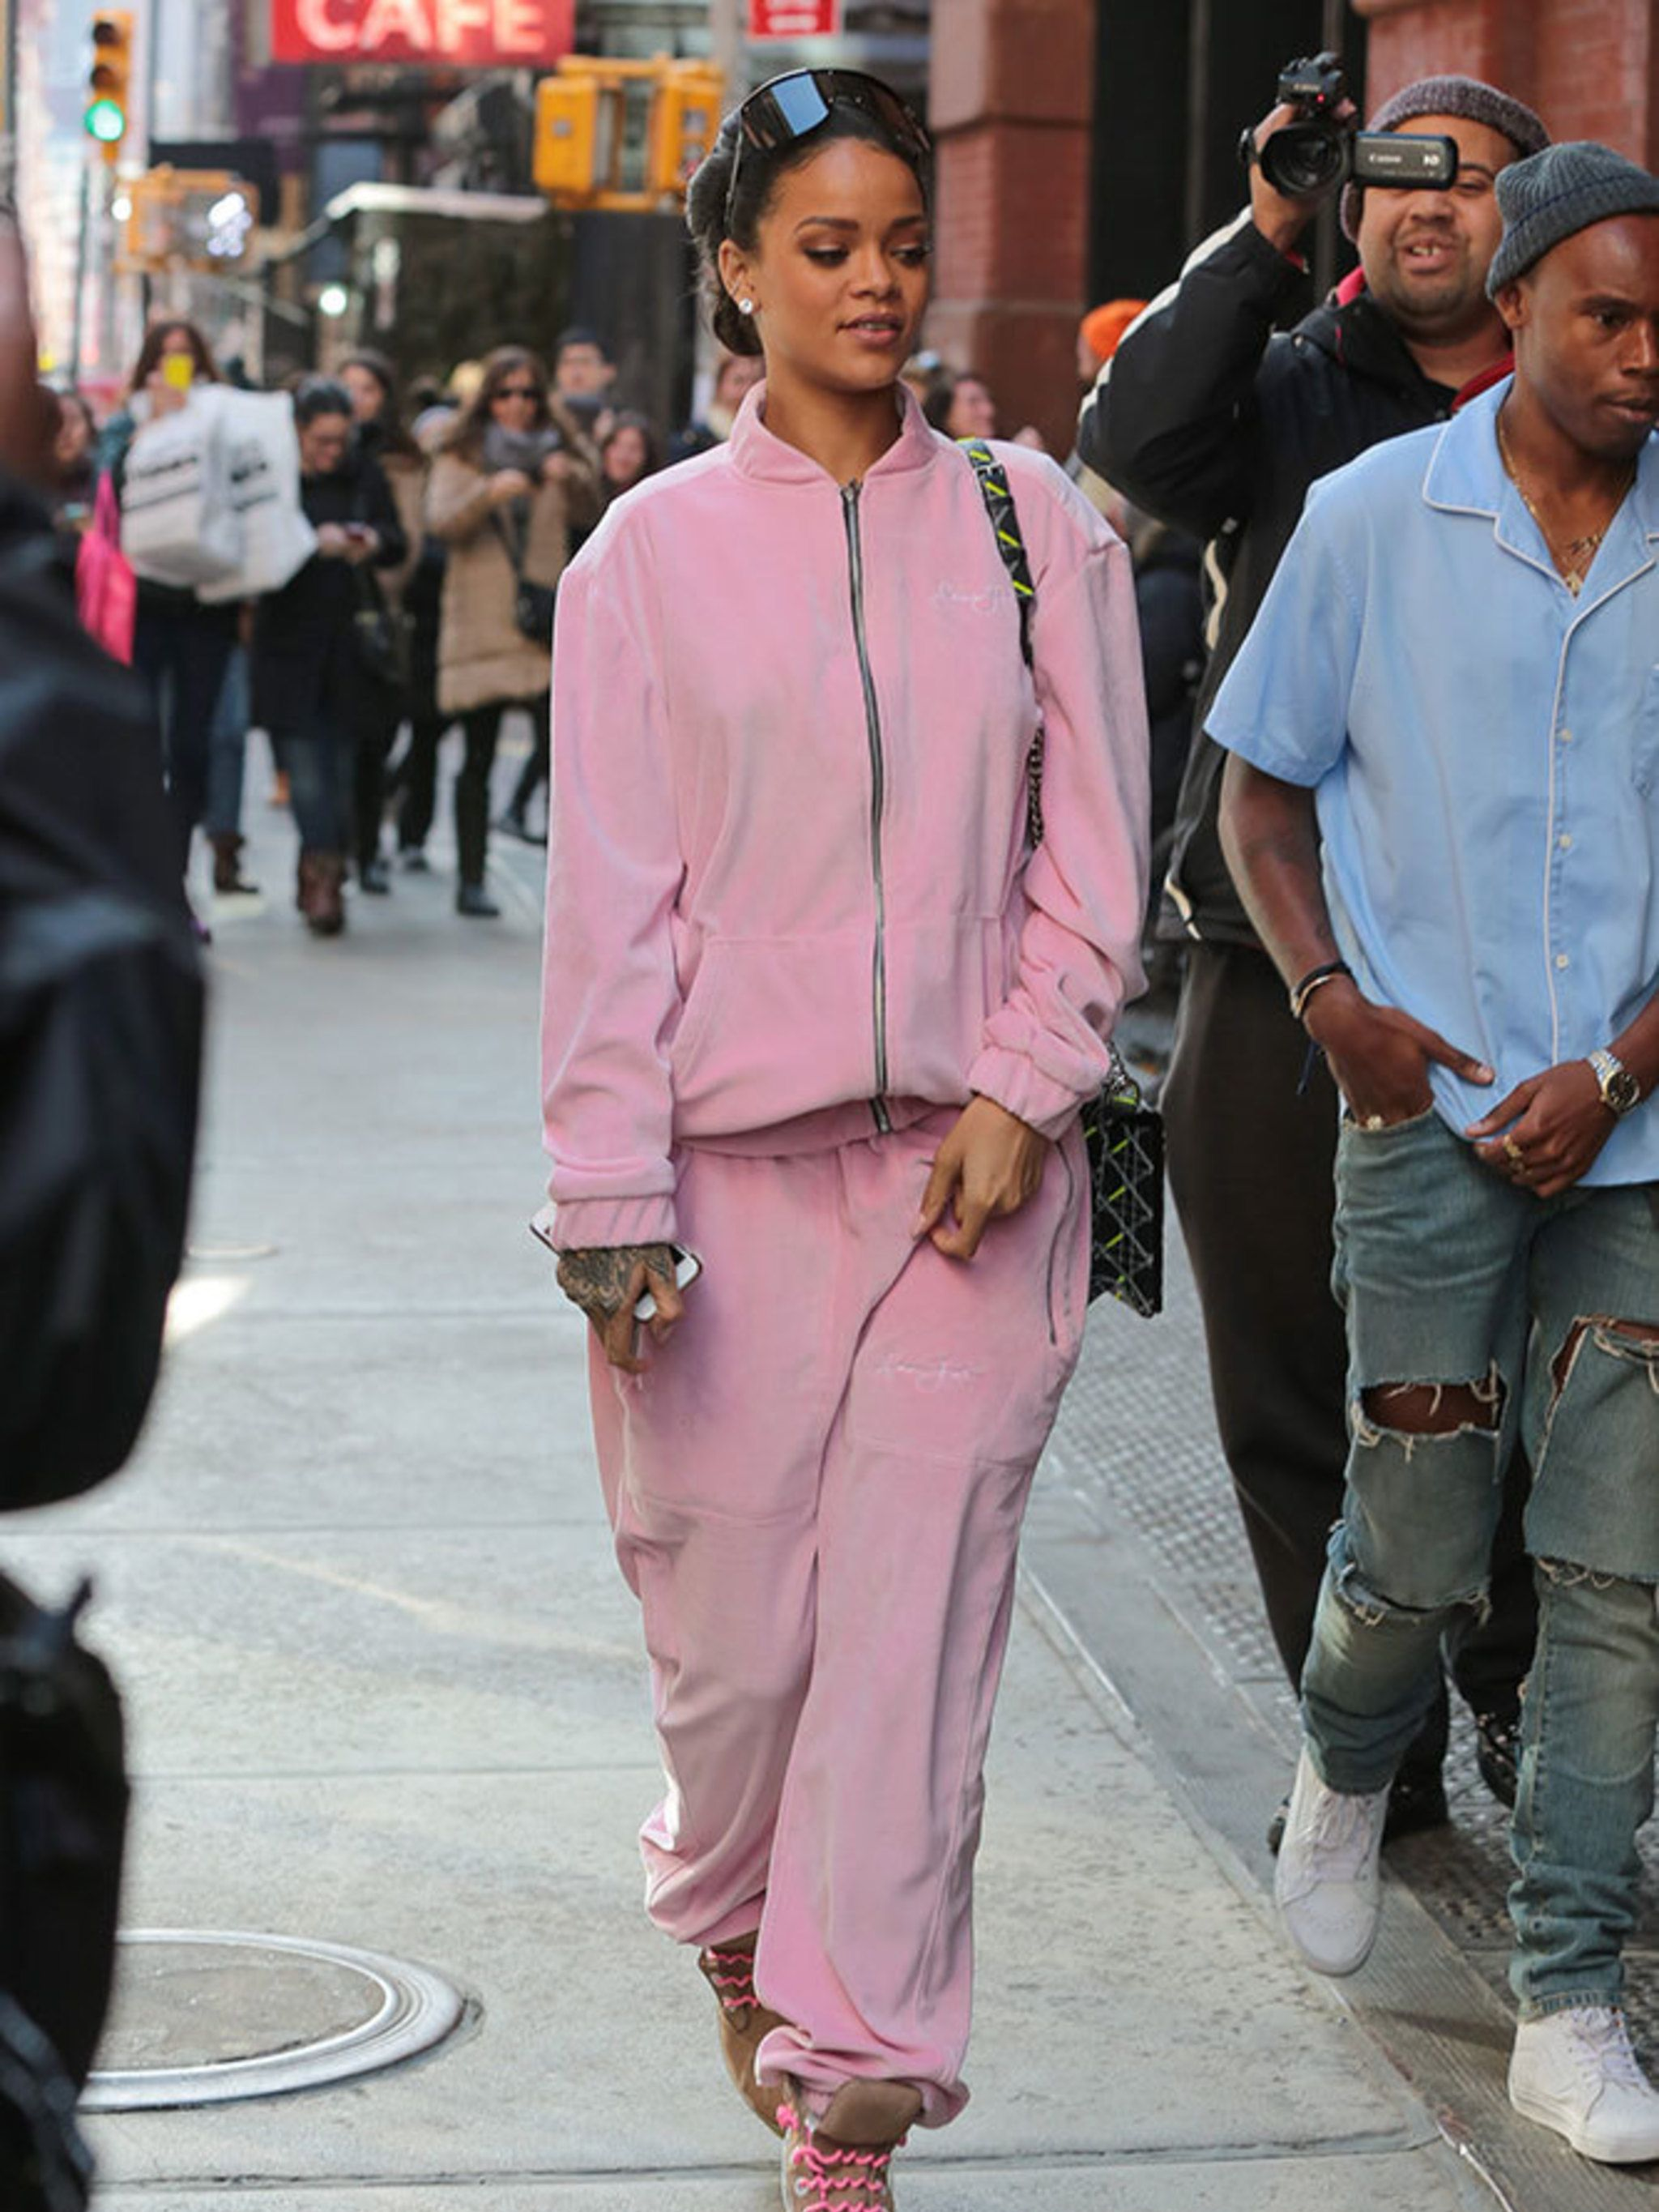 6 Tracksuits To Keep You Looking As Comfy And Cool As Rihanna